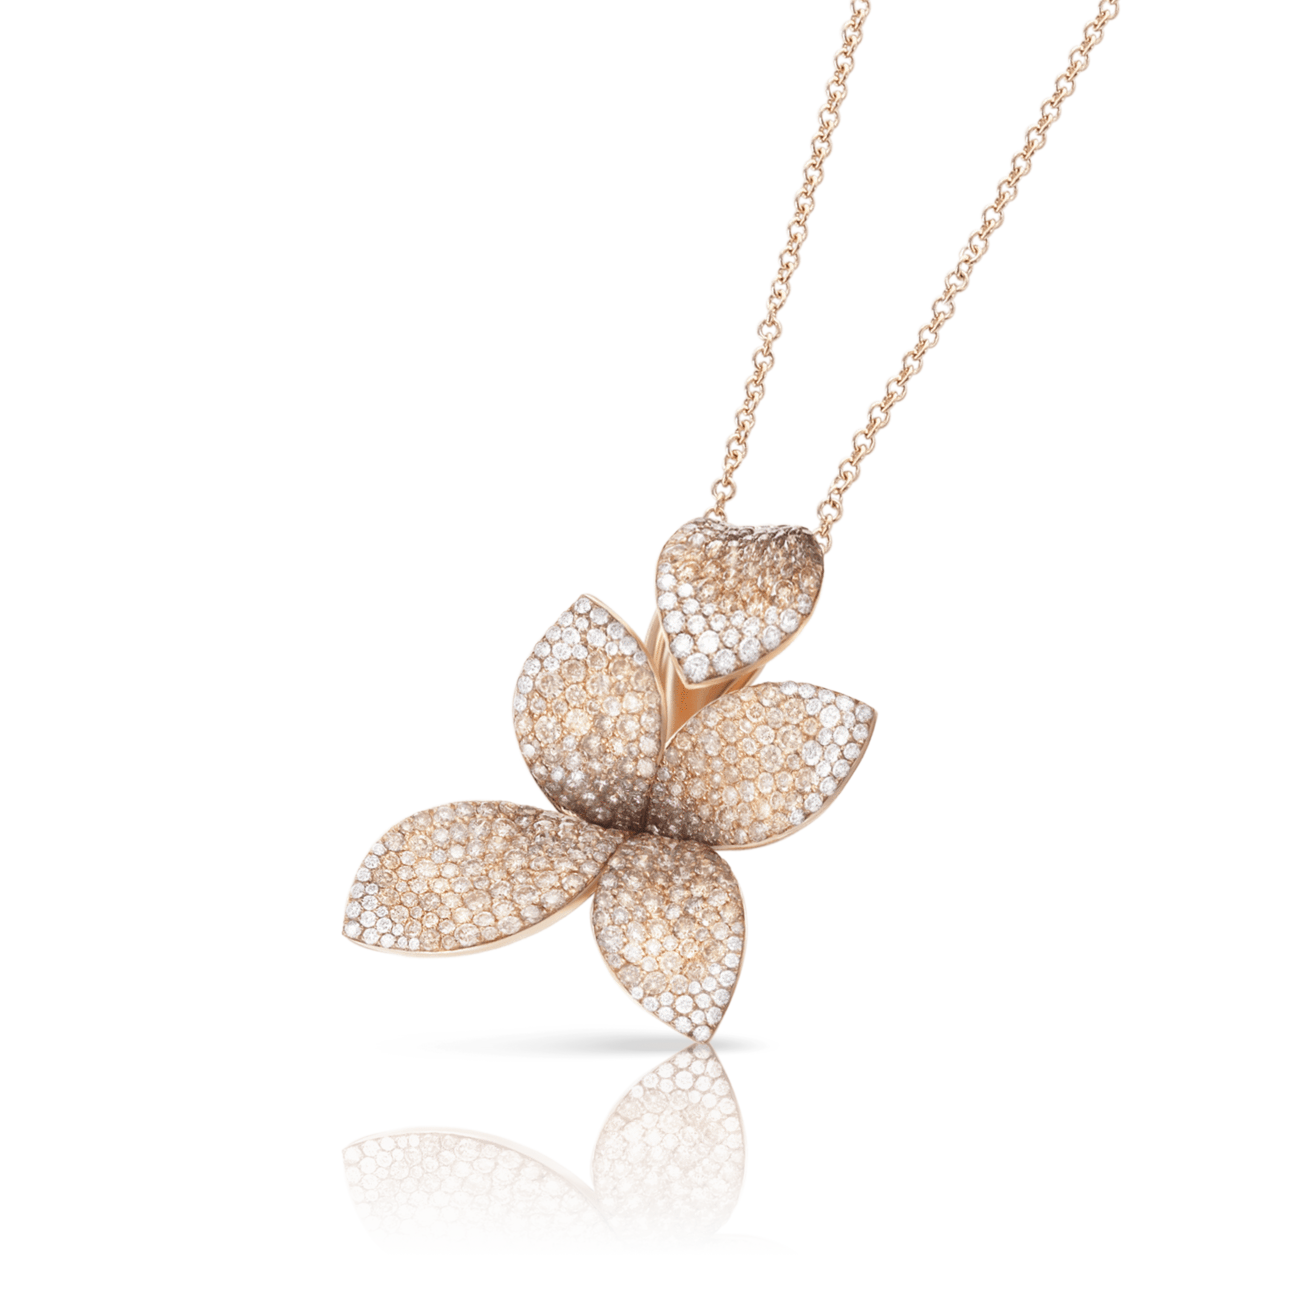 GIARDINI SEGRETI NECKLACE WITH WHITE AND CHAMPAGNE DIAMONDS